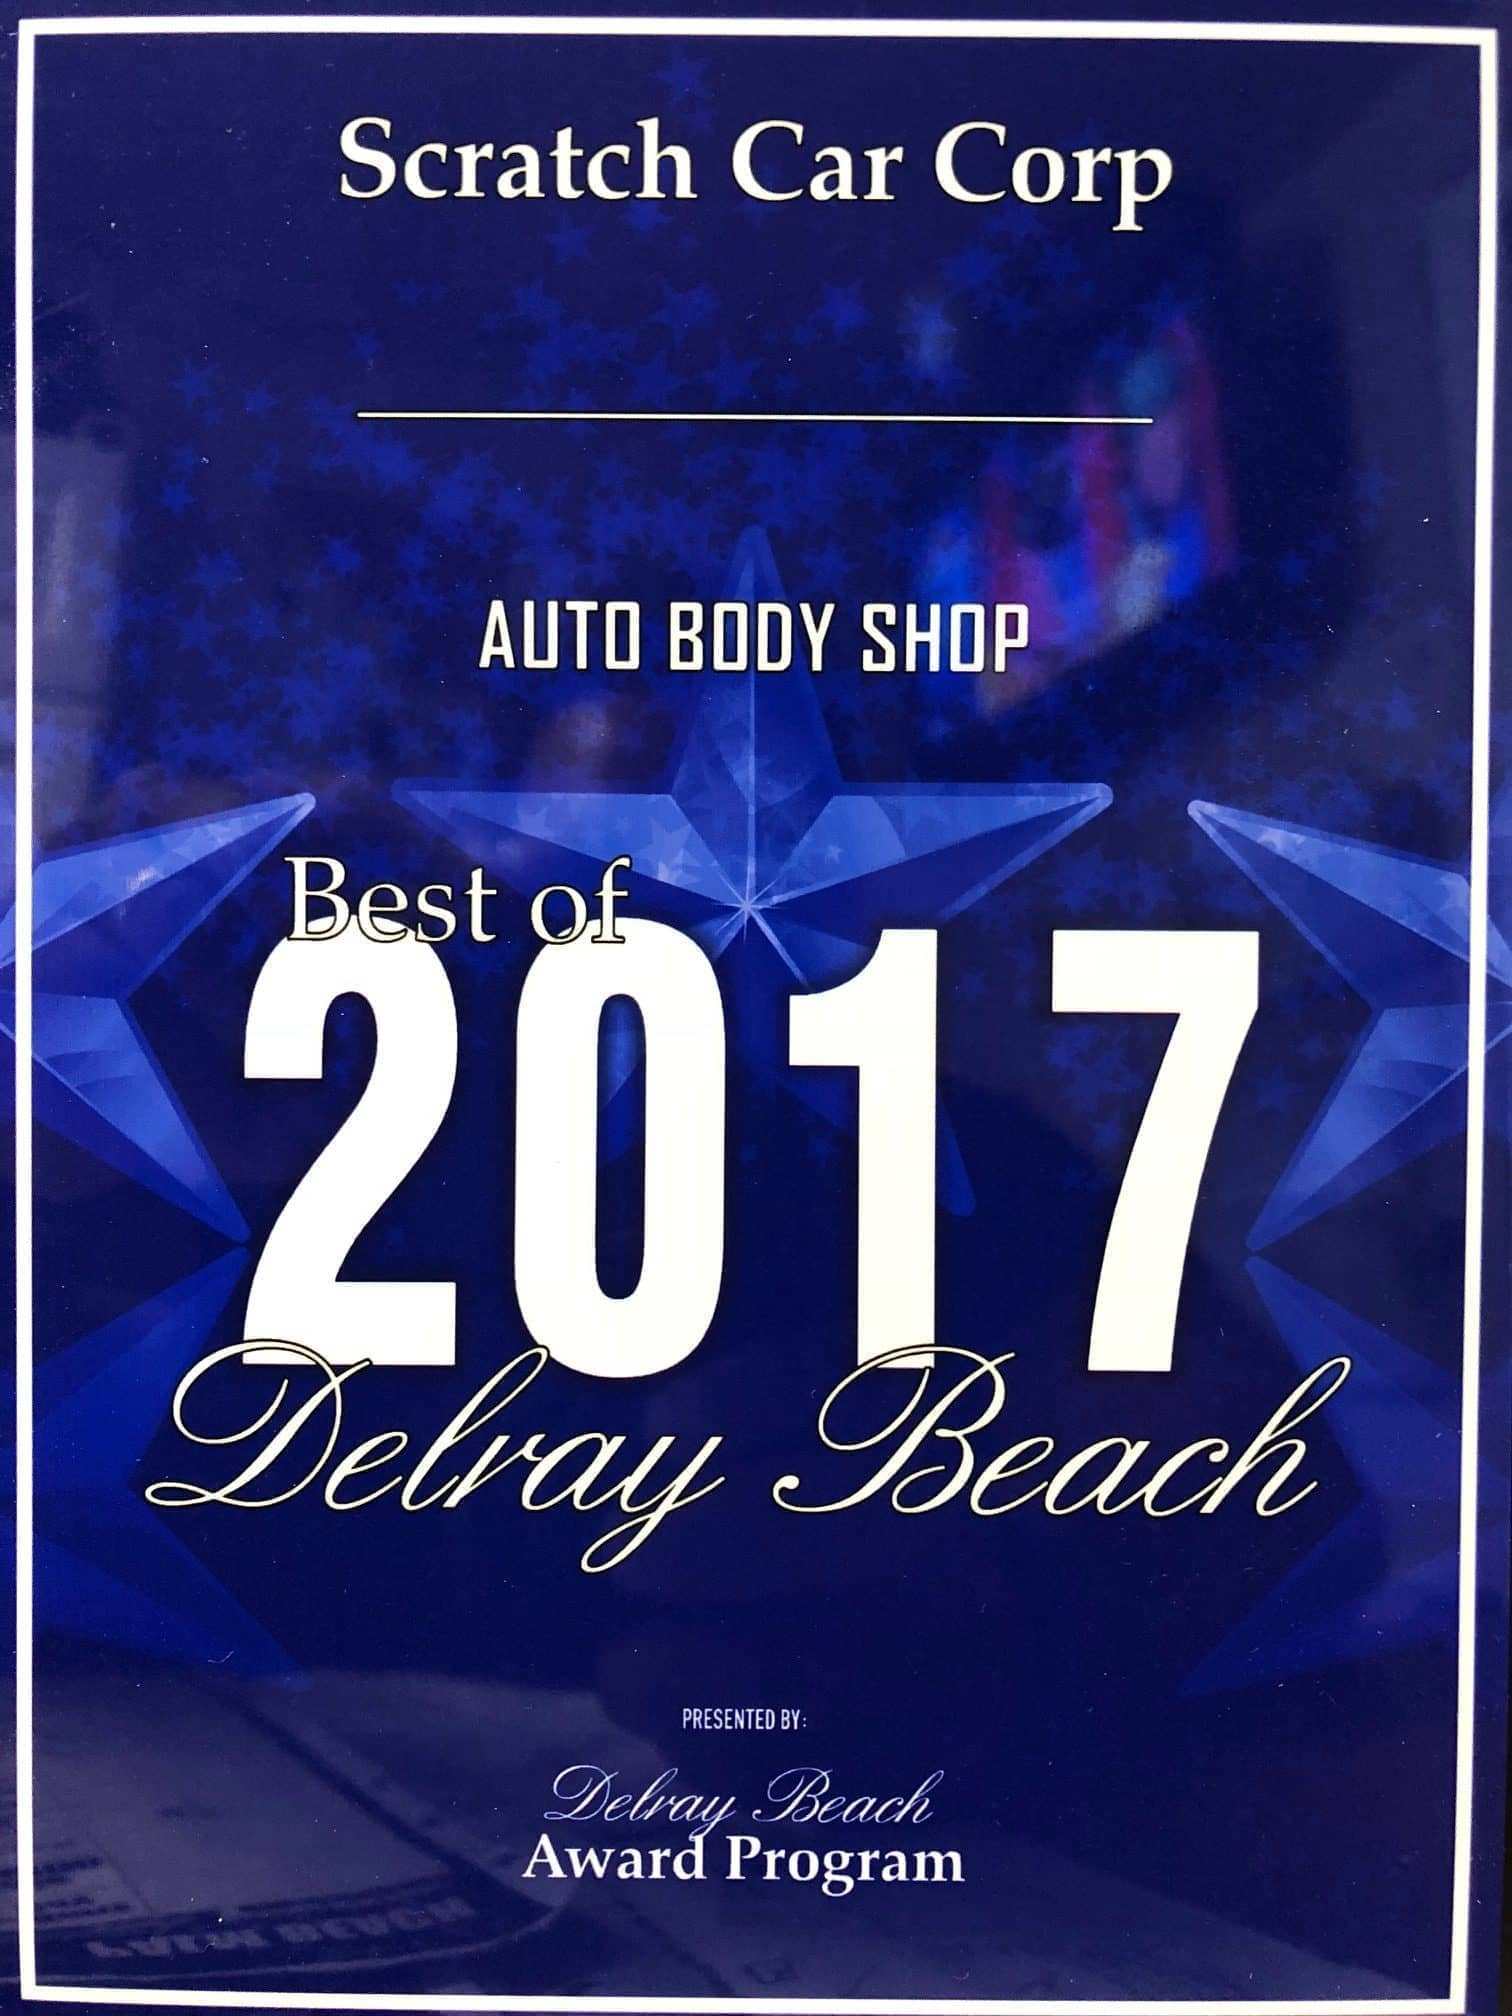 Auto Body Shop Award